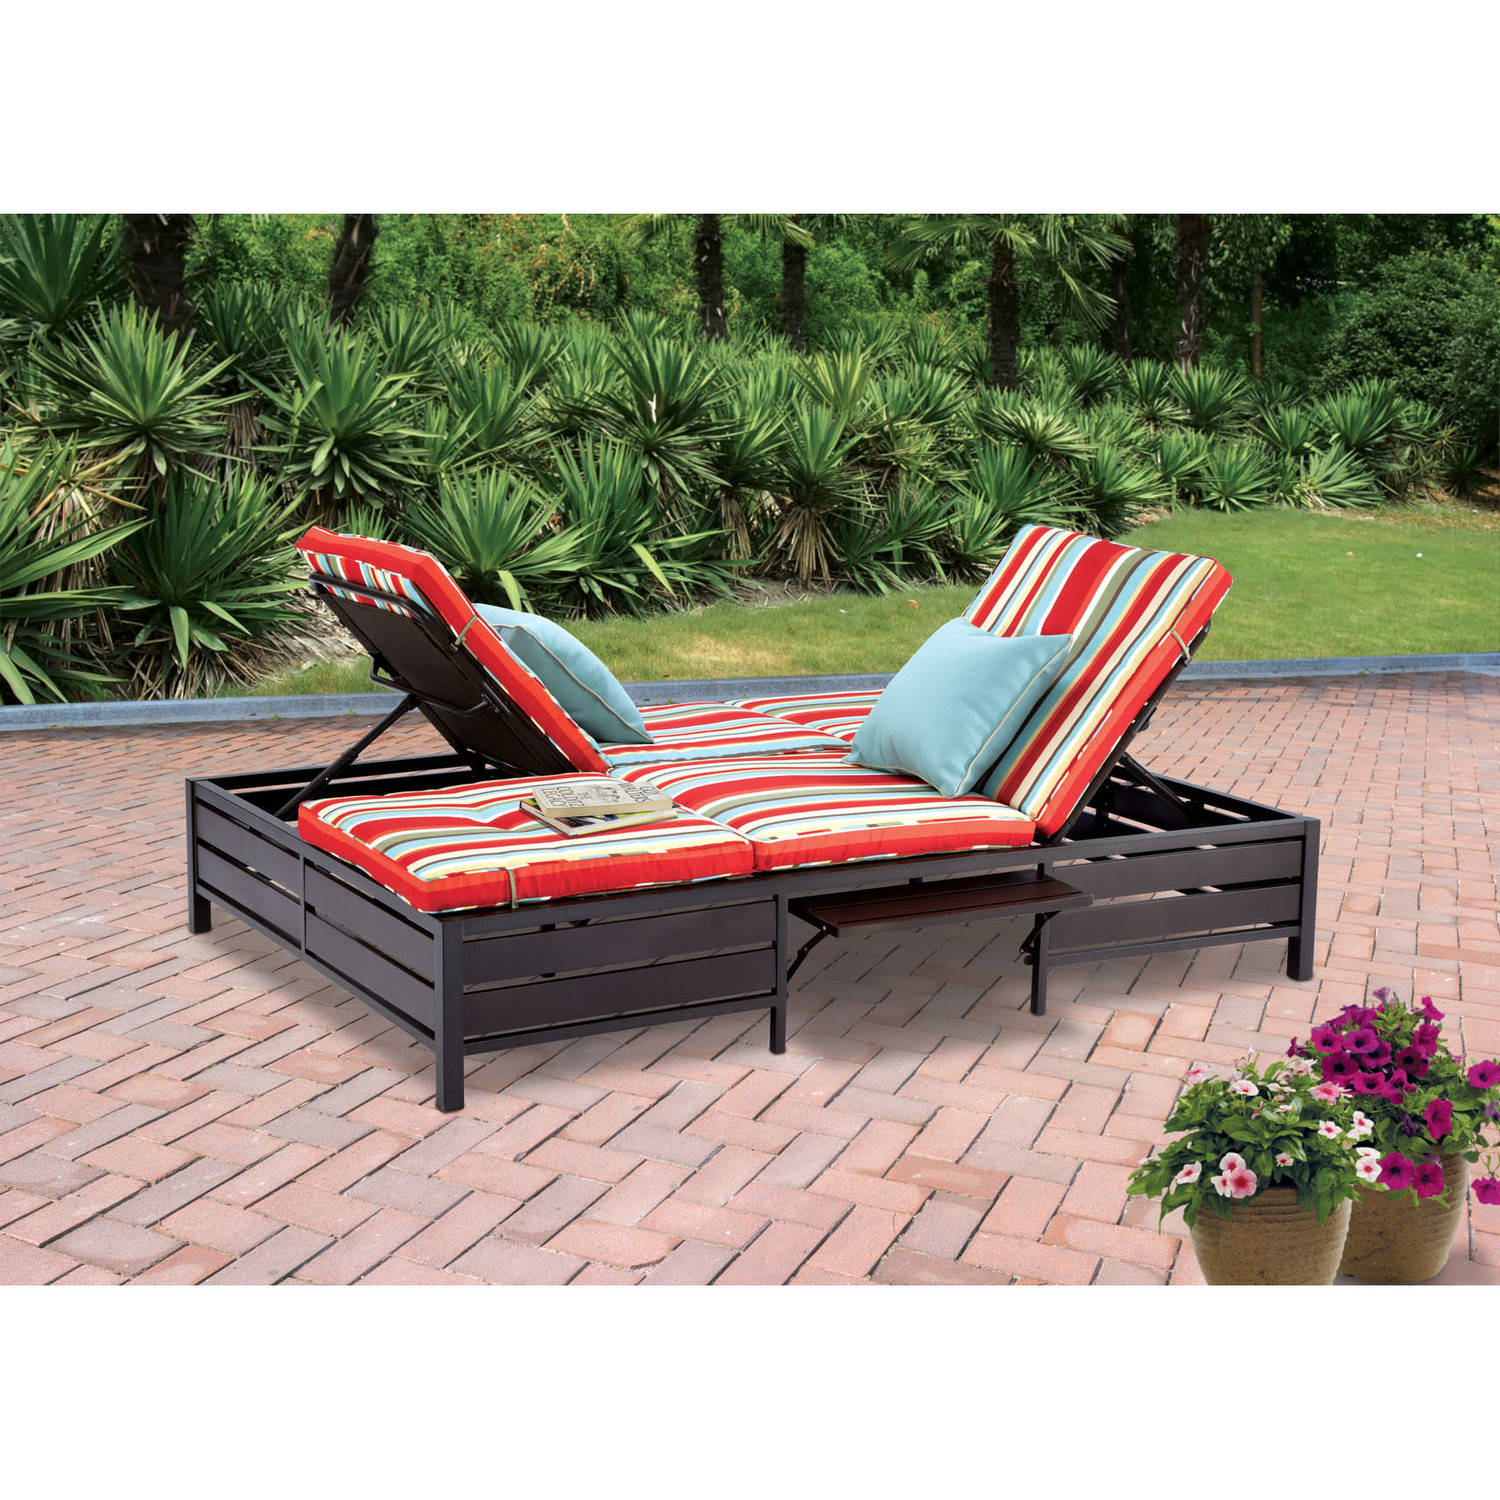 Mainstays Outdoor Double Chaise Lounger Stripe Seats 2 Walmart Com